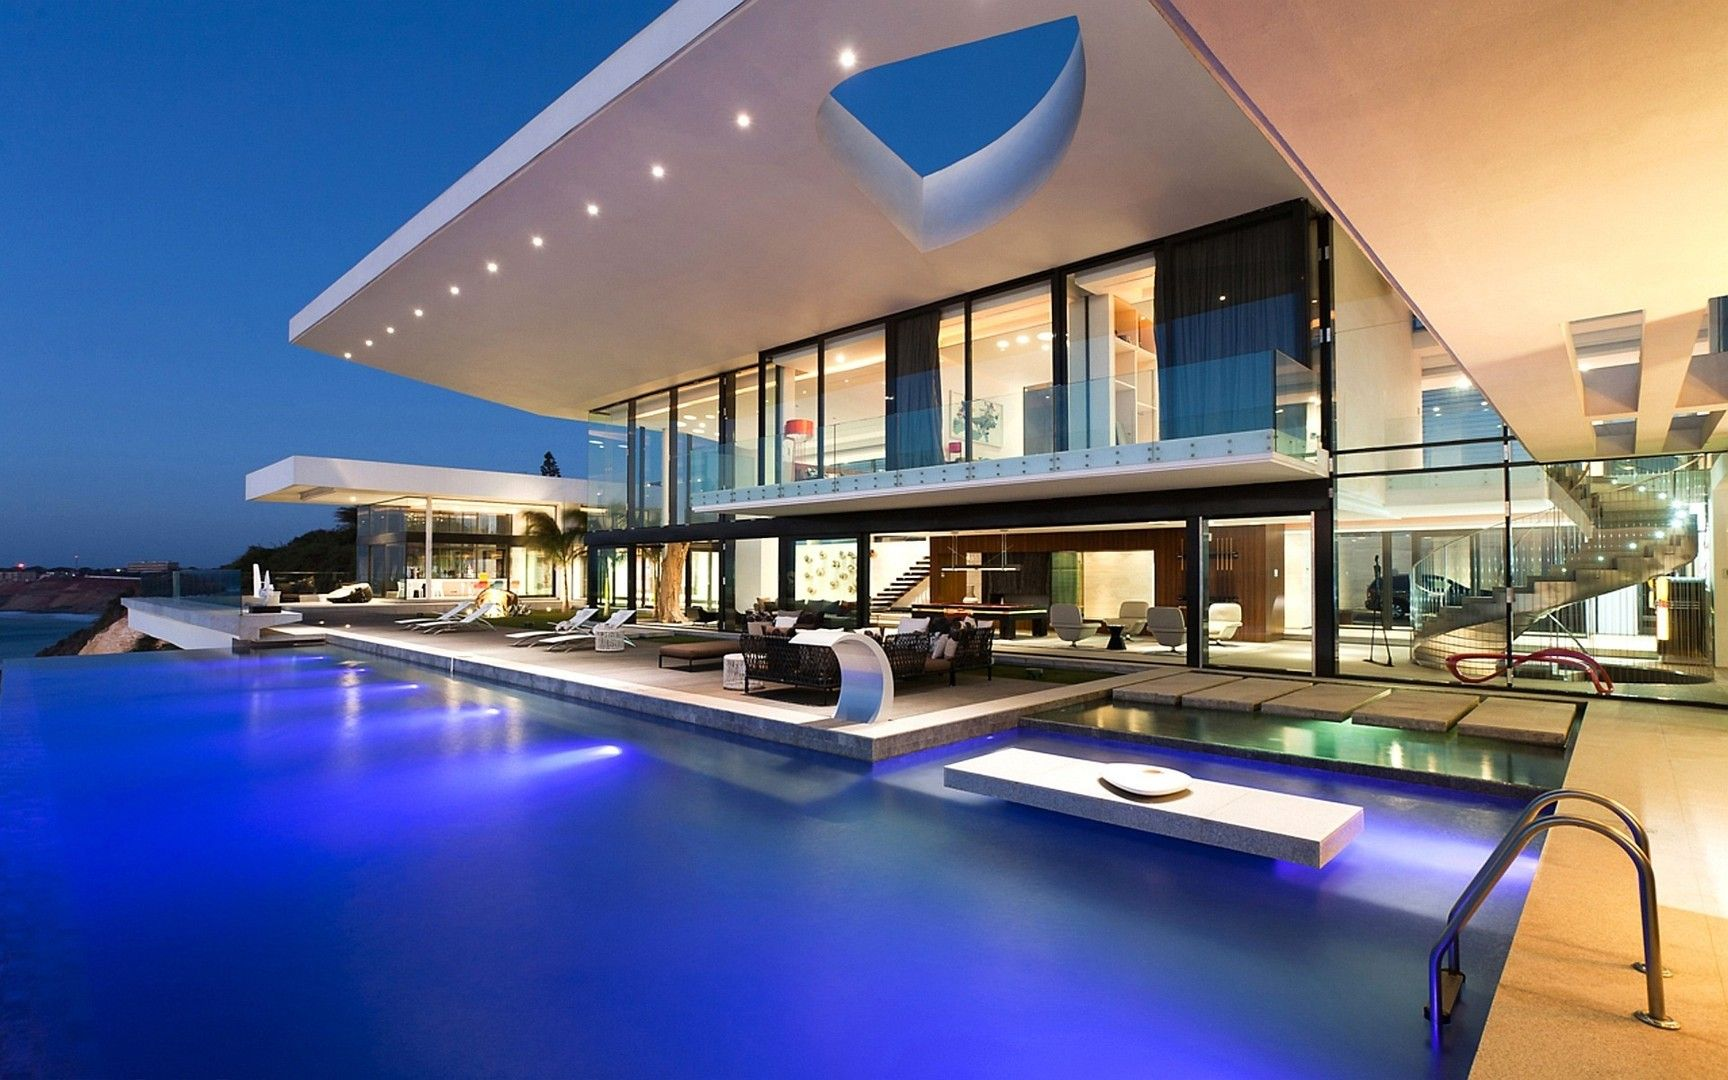 Awesome modern house with pool pool viewdecor